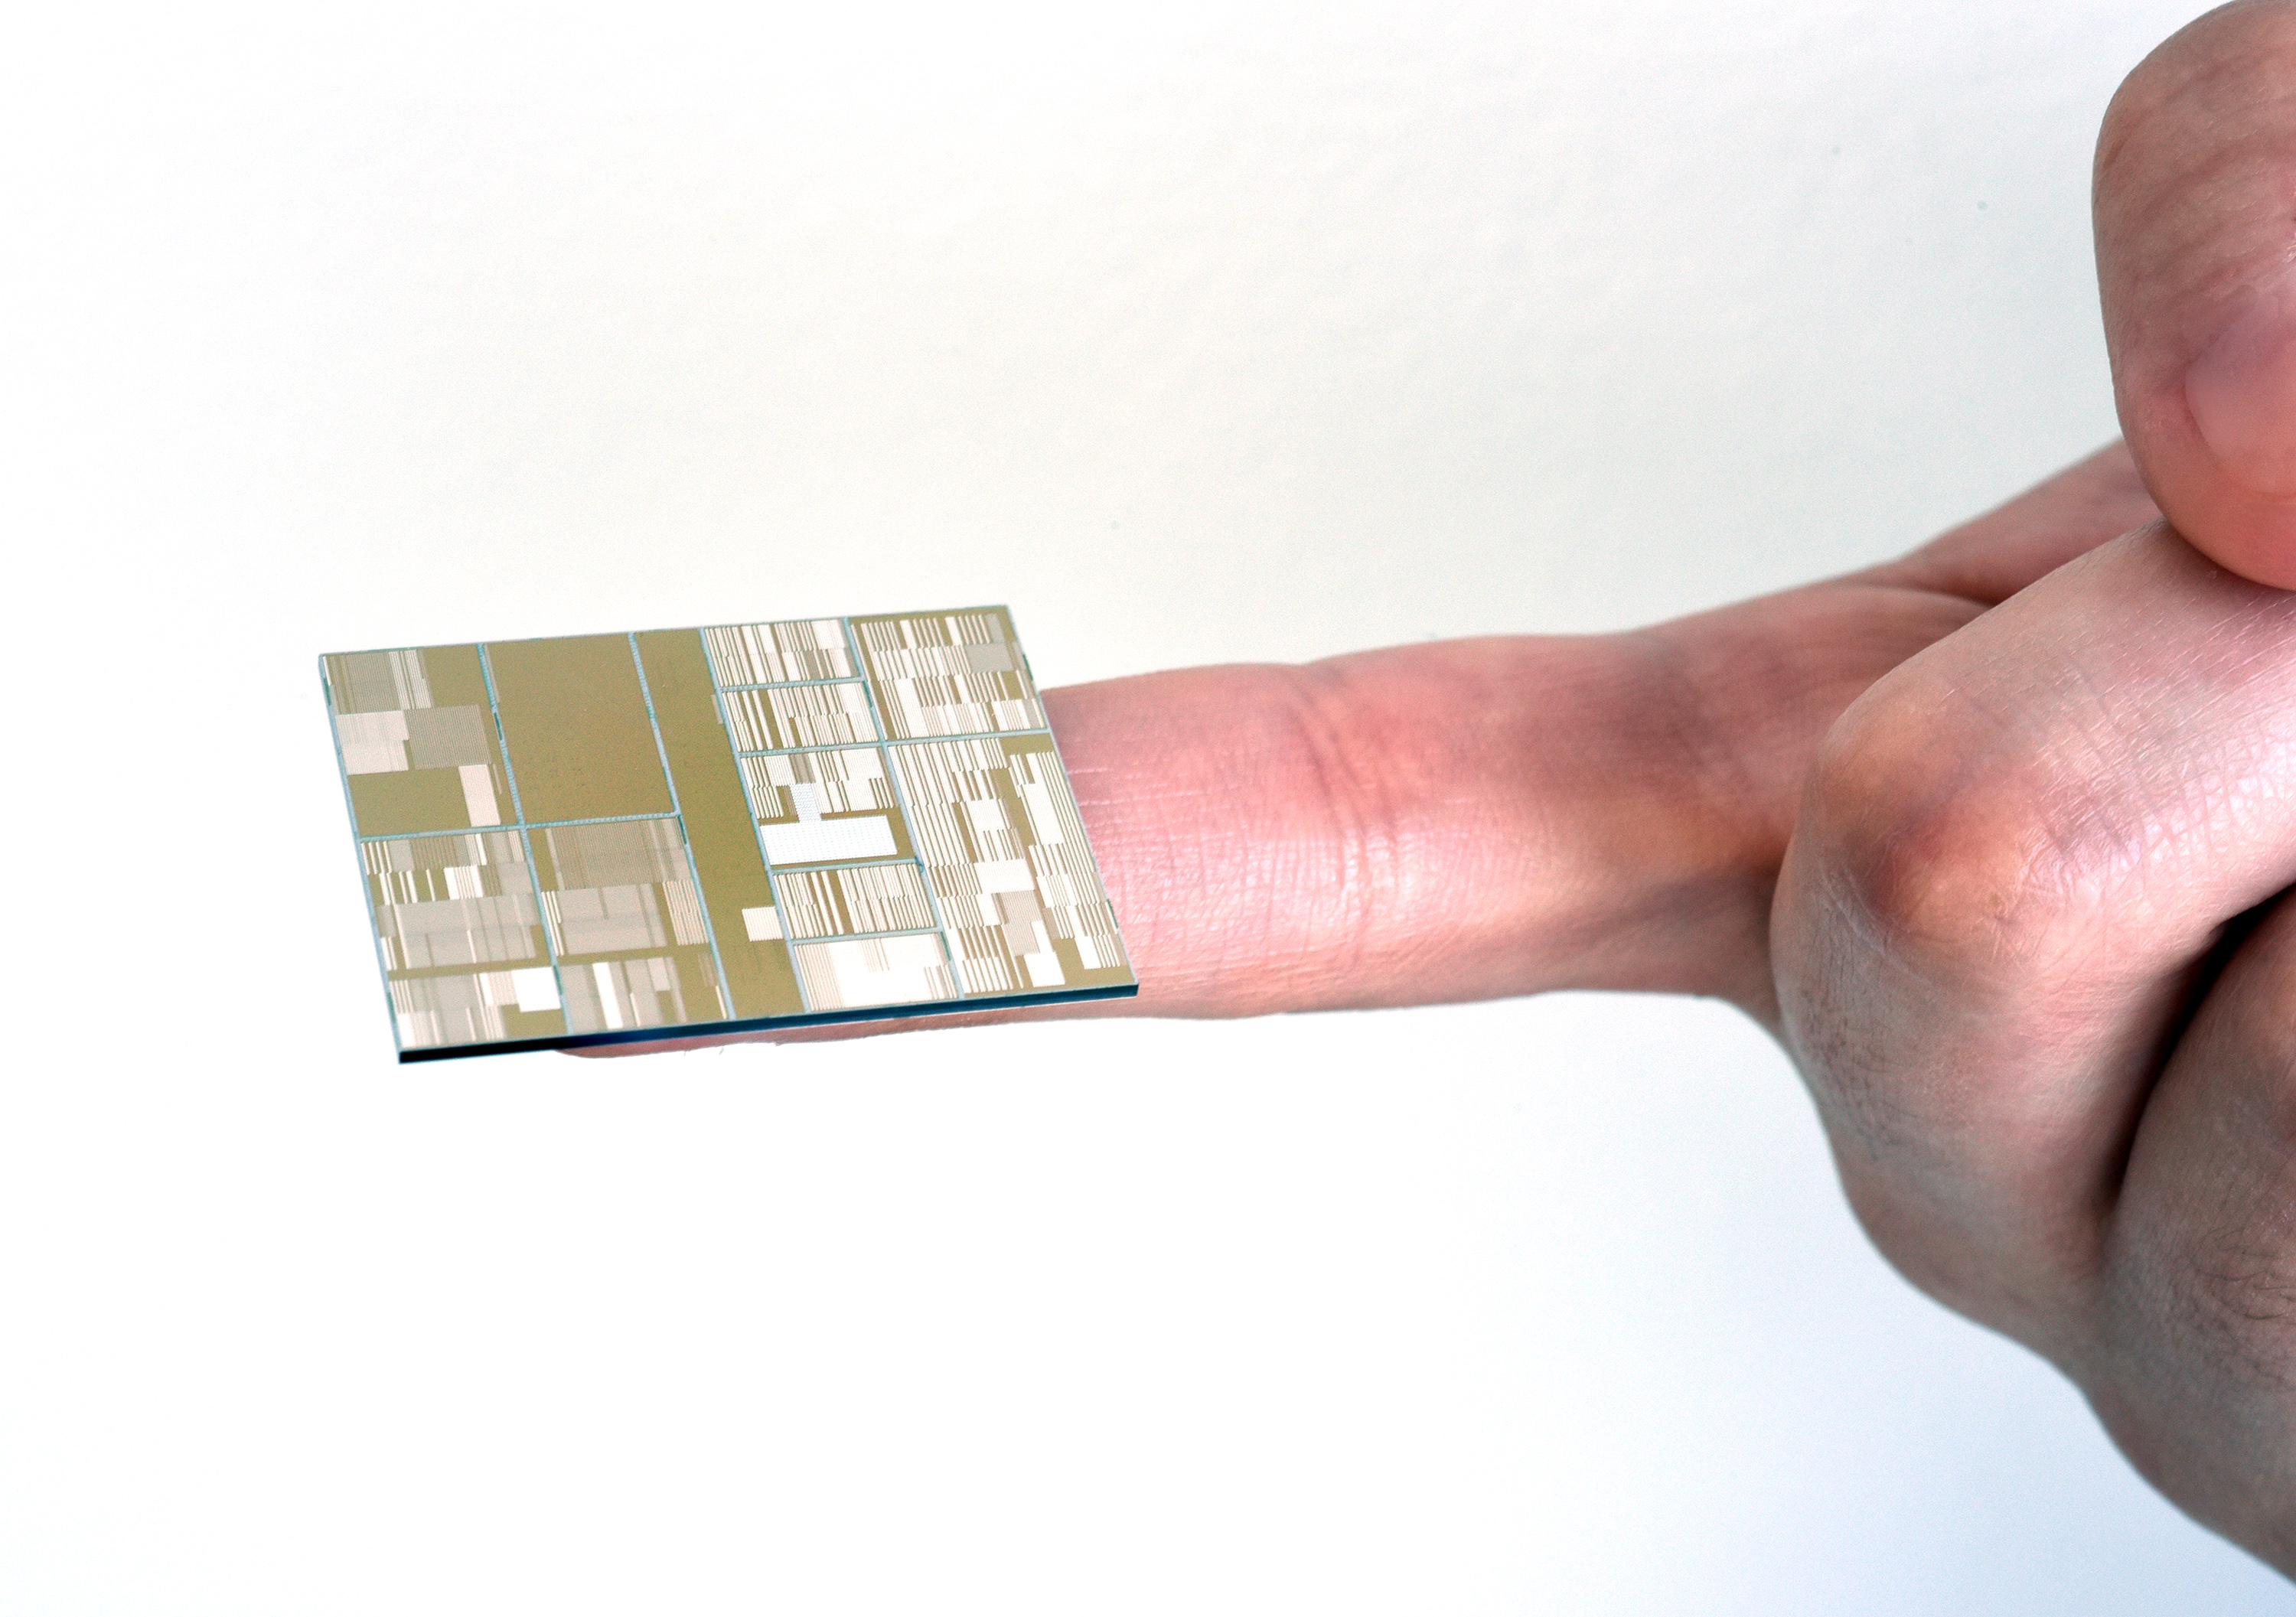 Beyond silicon: IBM unveils world's first 7nm chip | Ars Technica